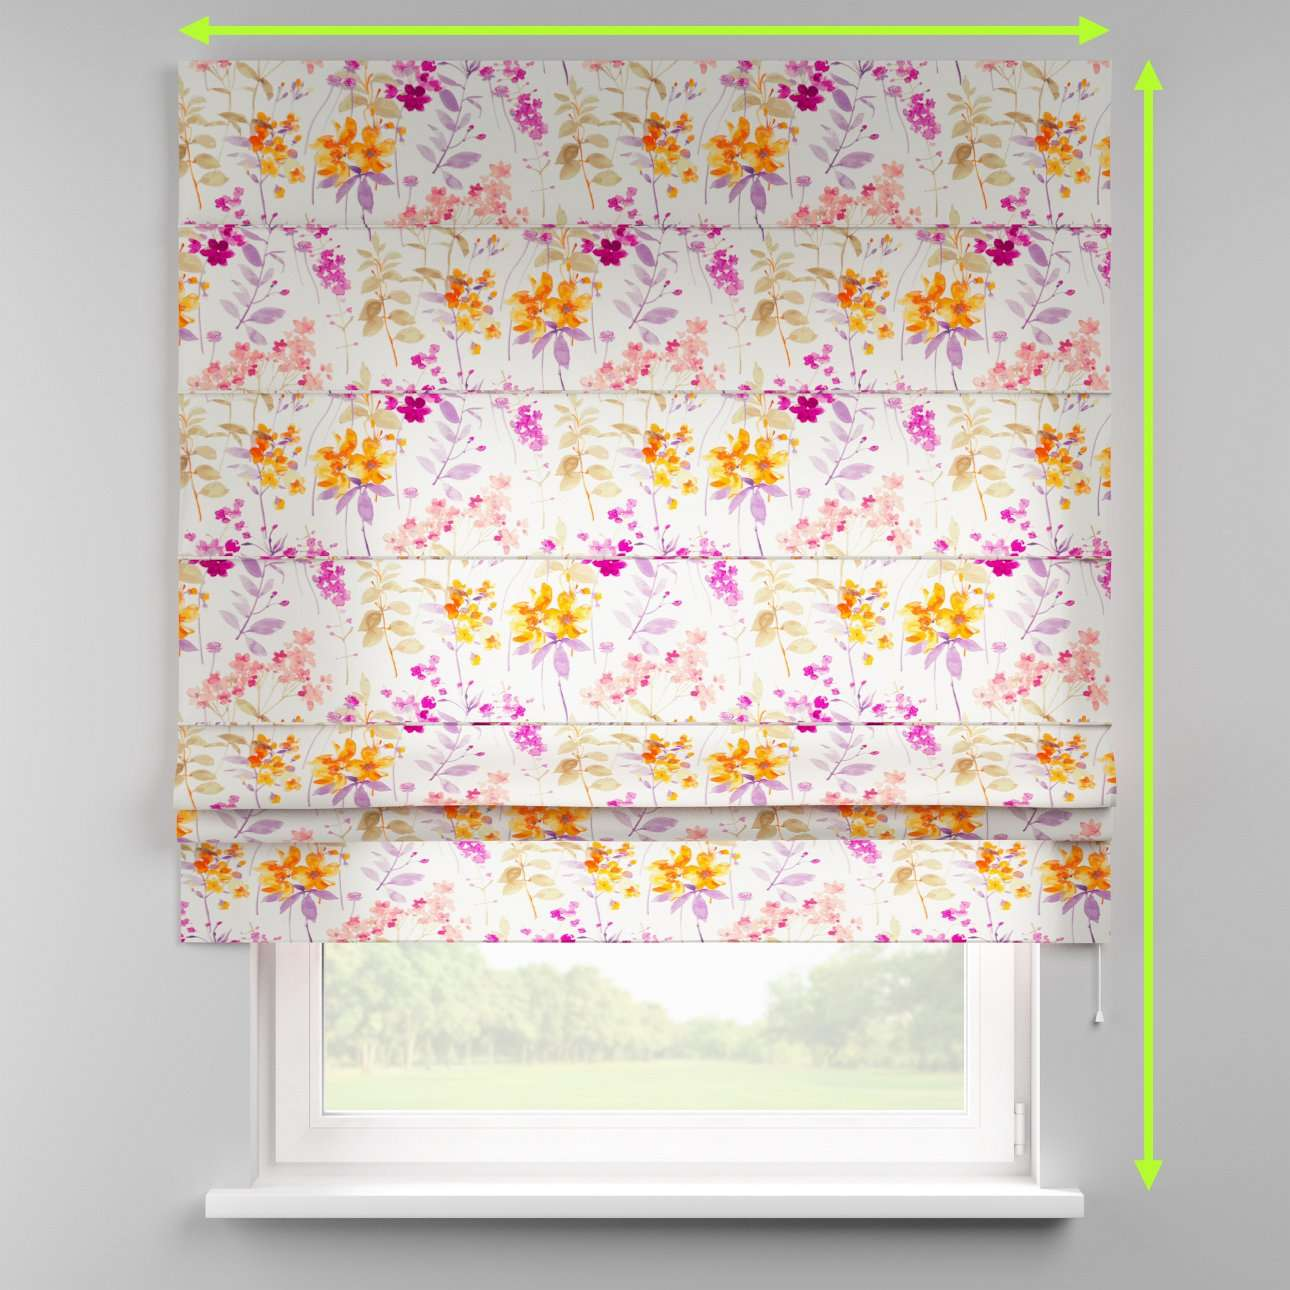 Padva roman blind  in collection Monet, fabric: 140-04